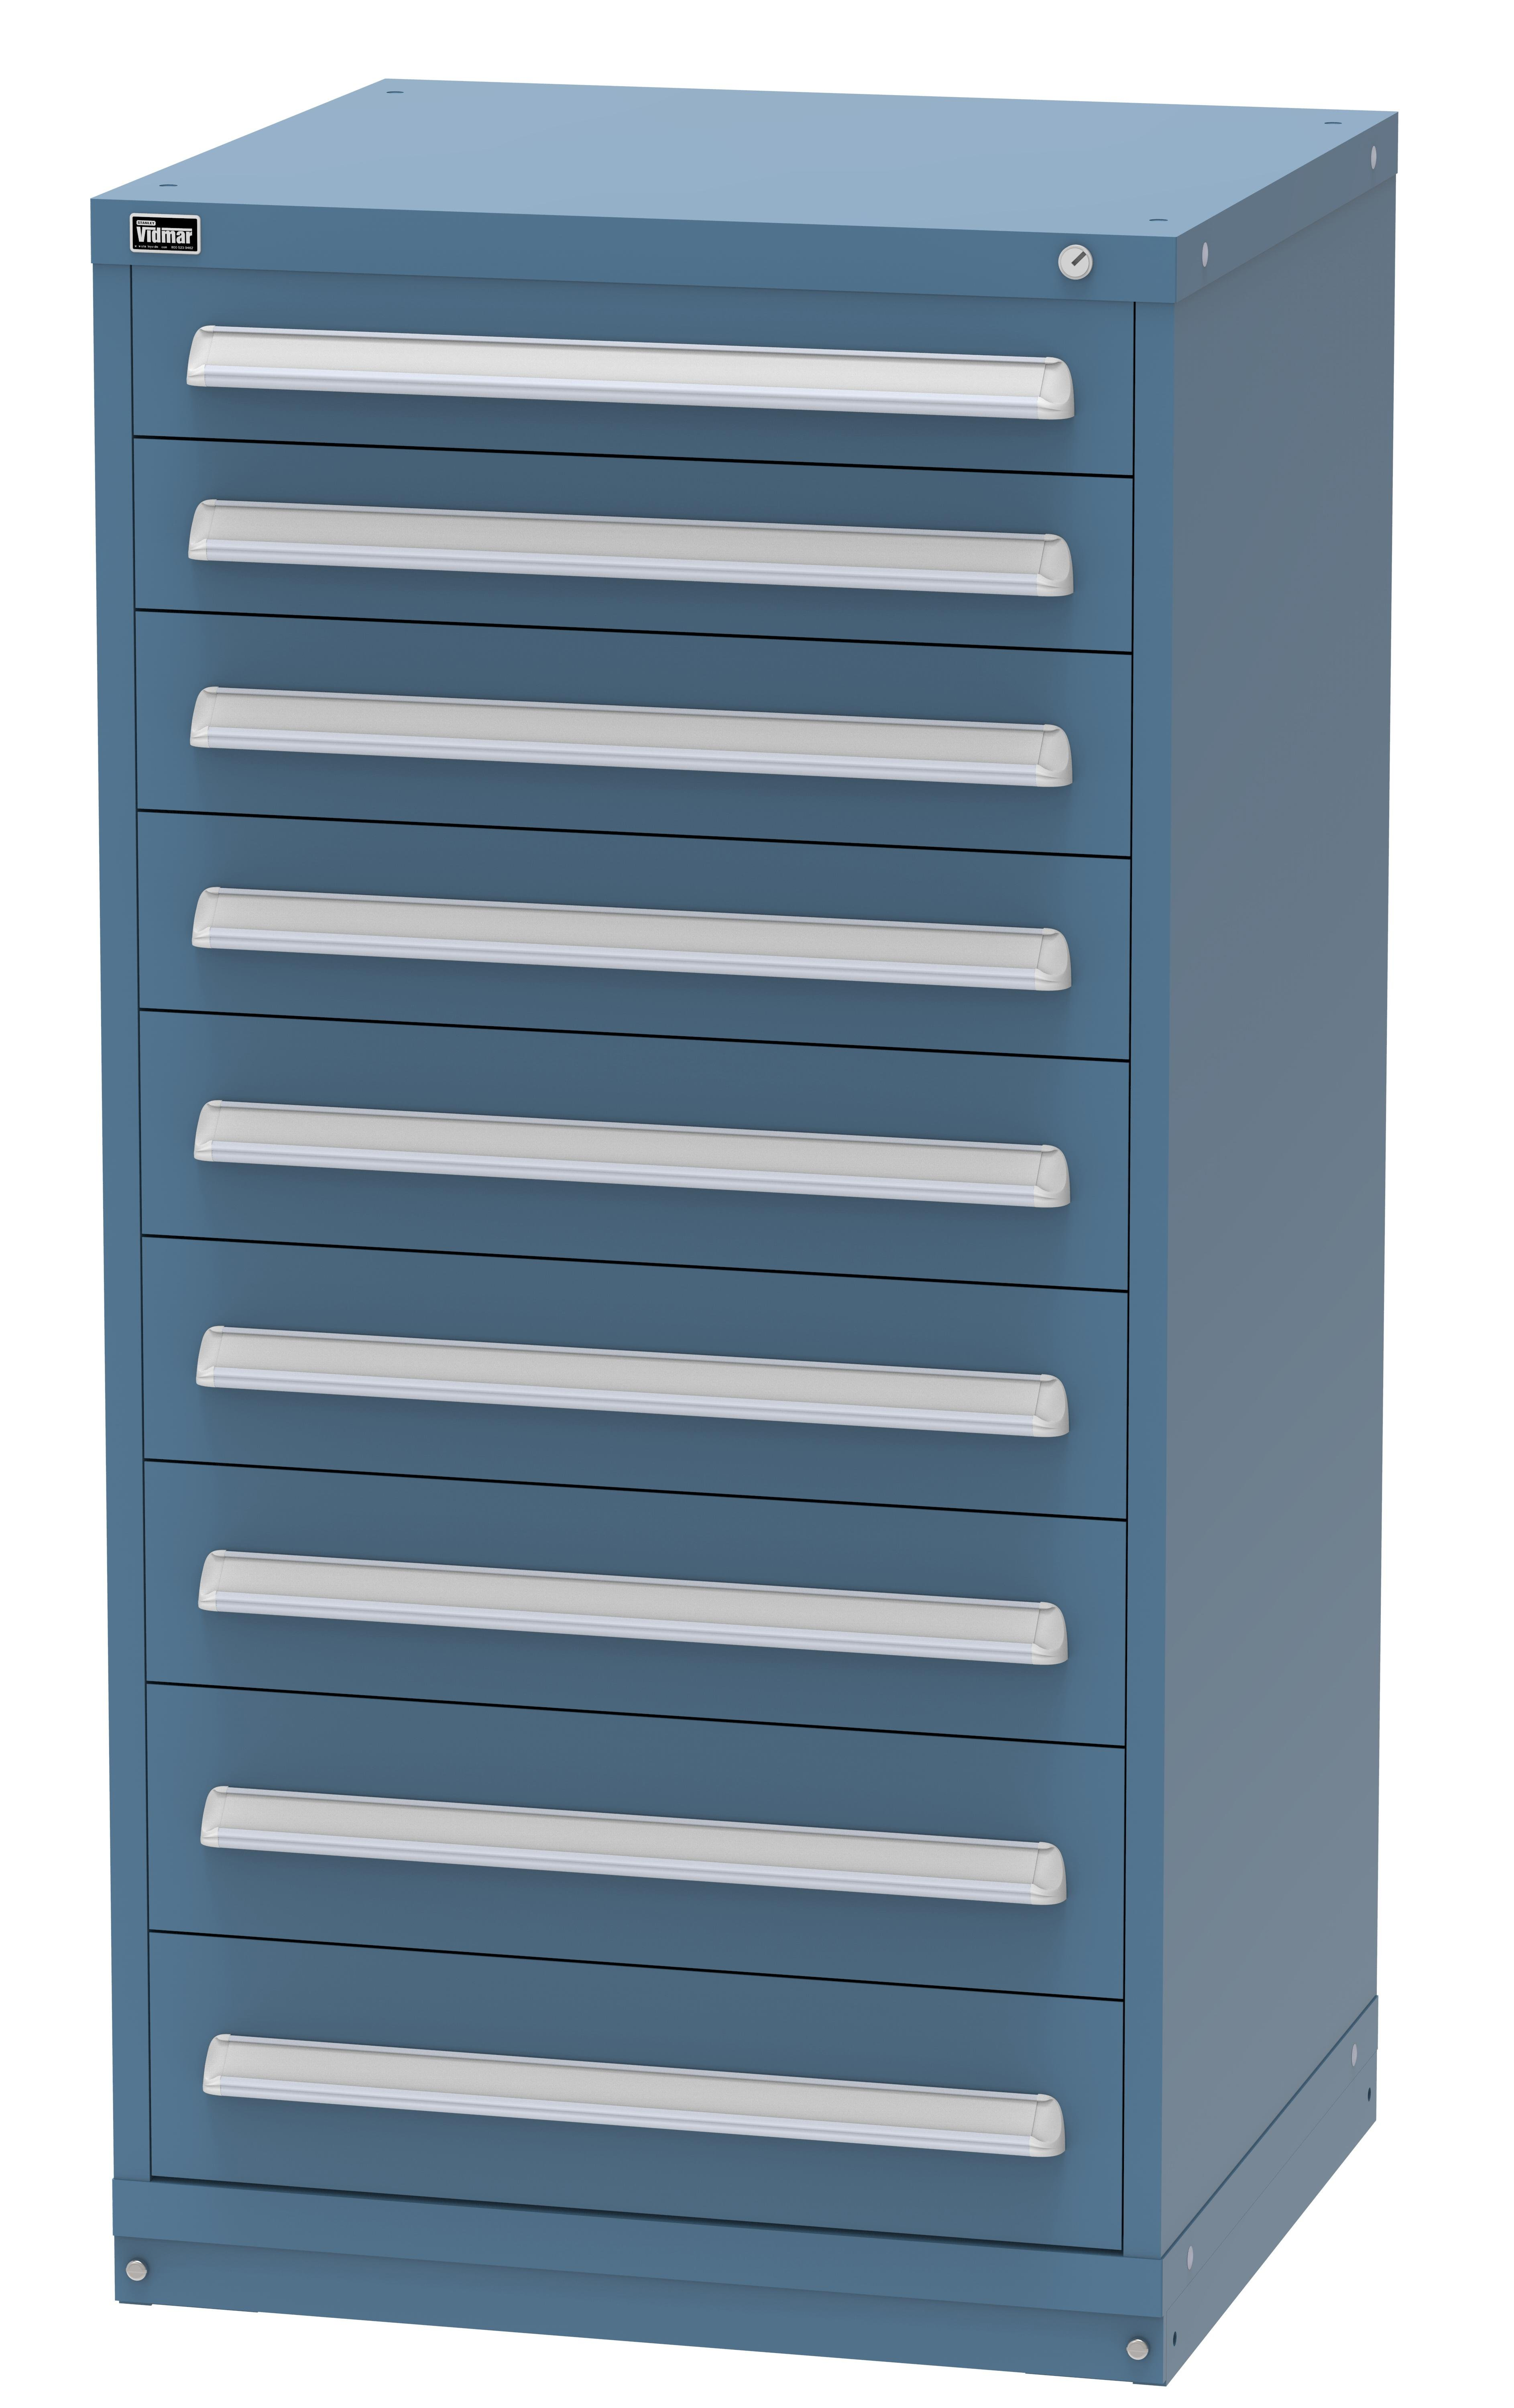 painted drawer inter x htm sales overall h dim cabinet drawers plant d lista cleaned machinery w cabinets storage